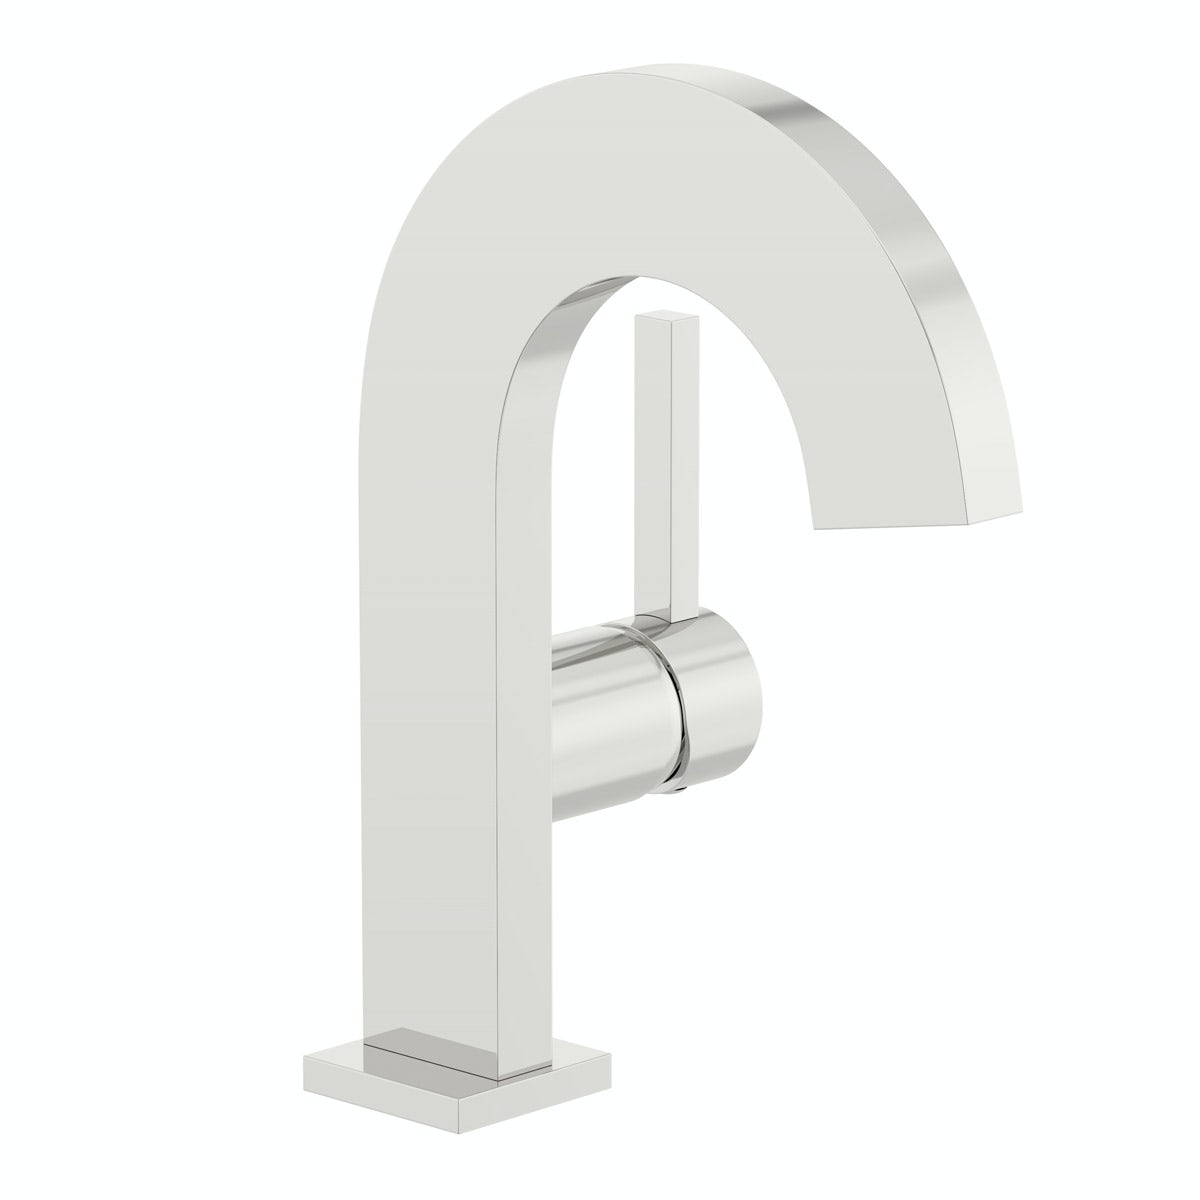 Mode Harrison basin mixer tap offer pack